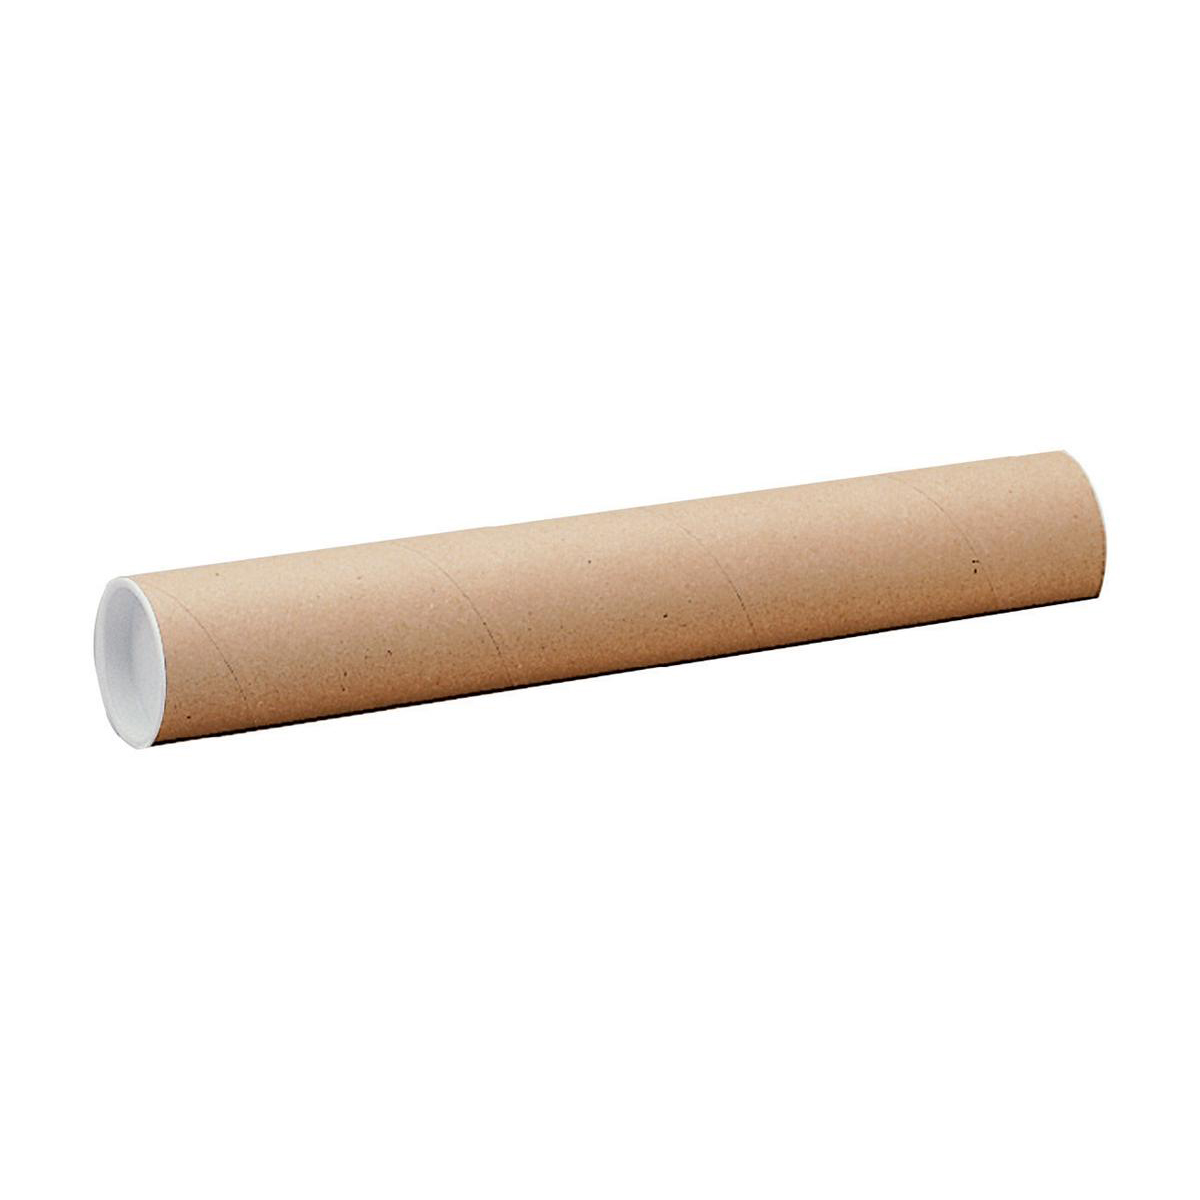 Postal Tubes Postal Tube Cardboard with Plastic End Caps A2 L450xDia.50mm RBL10519  Pack 25